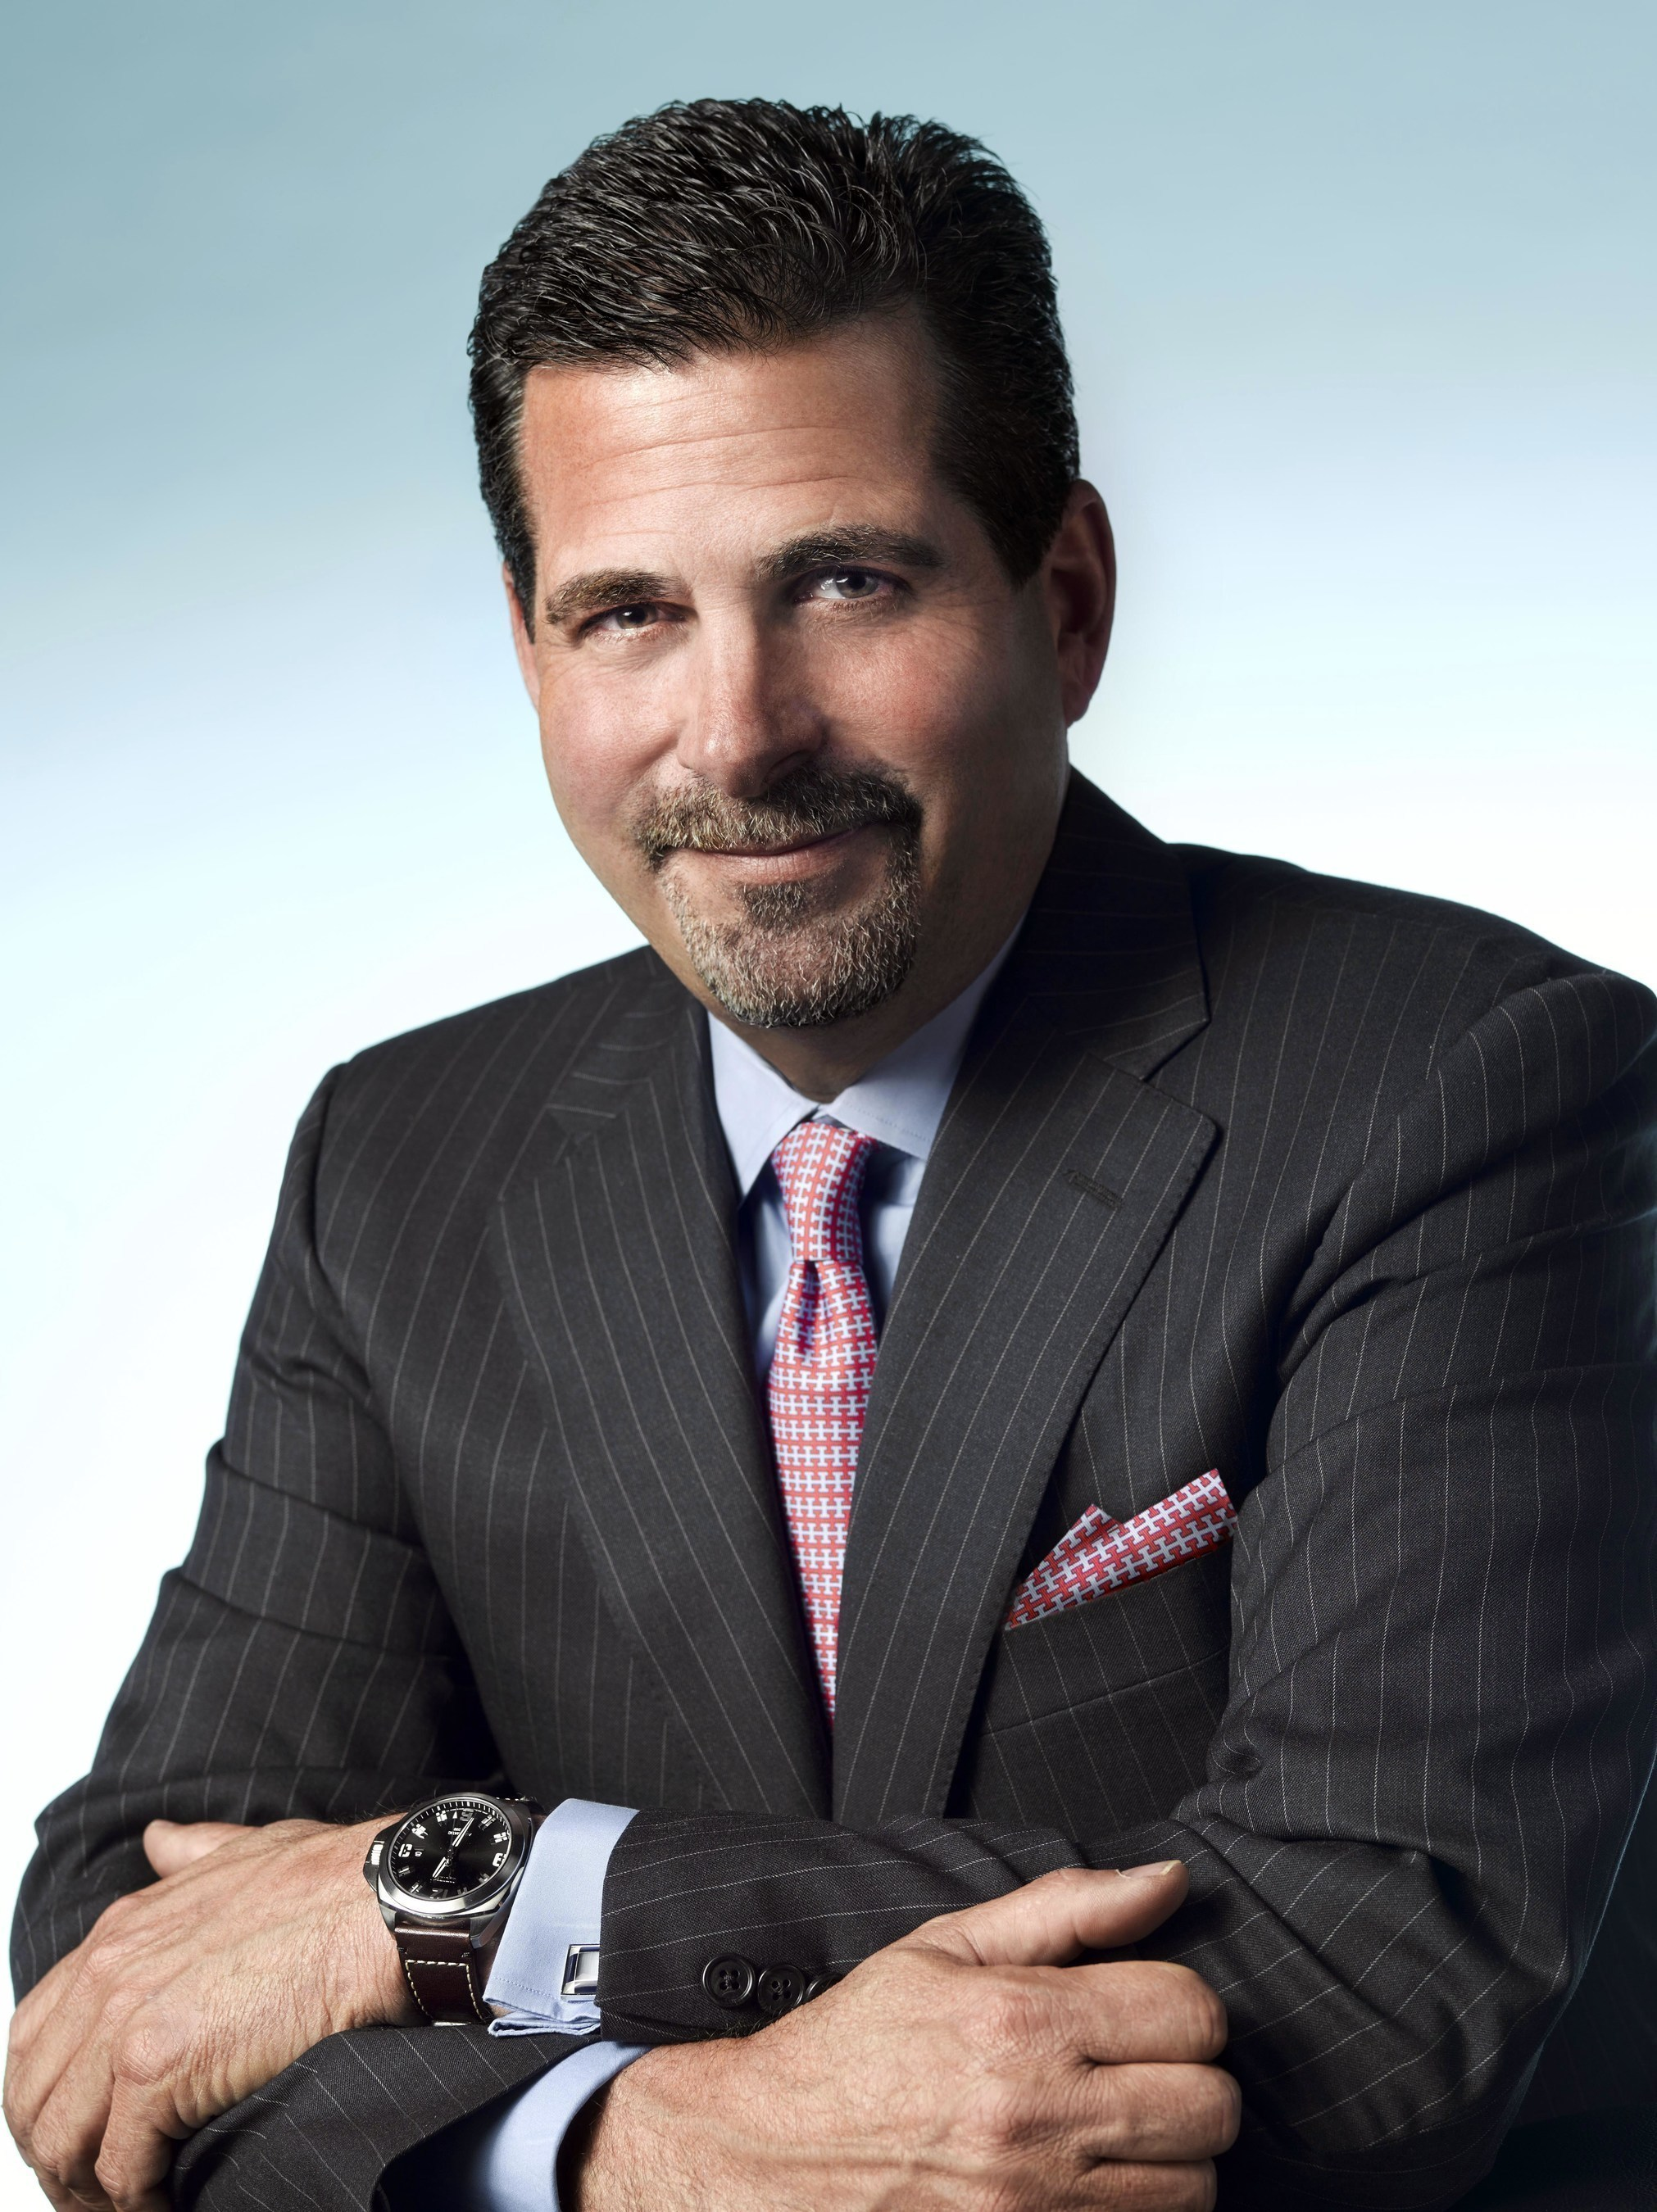 Jeffrey Cohen named President of Bulova Corporation in addition to his current position as President of Citizen Watch Company of America